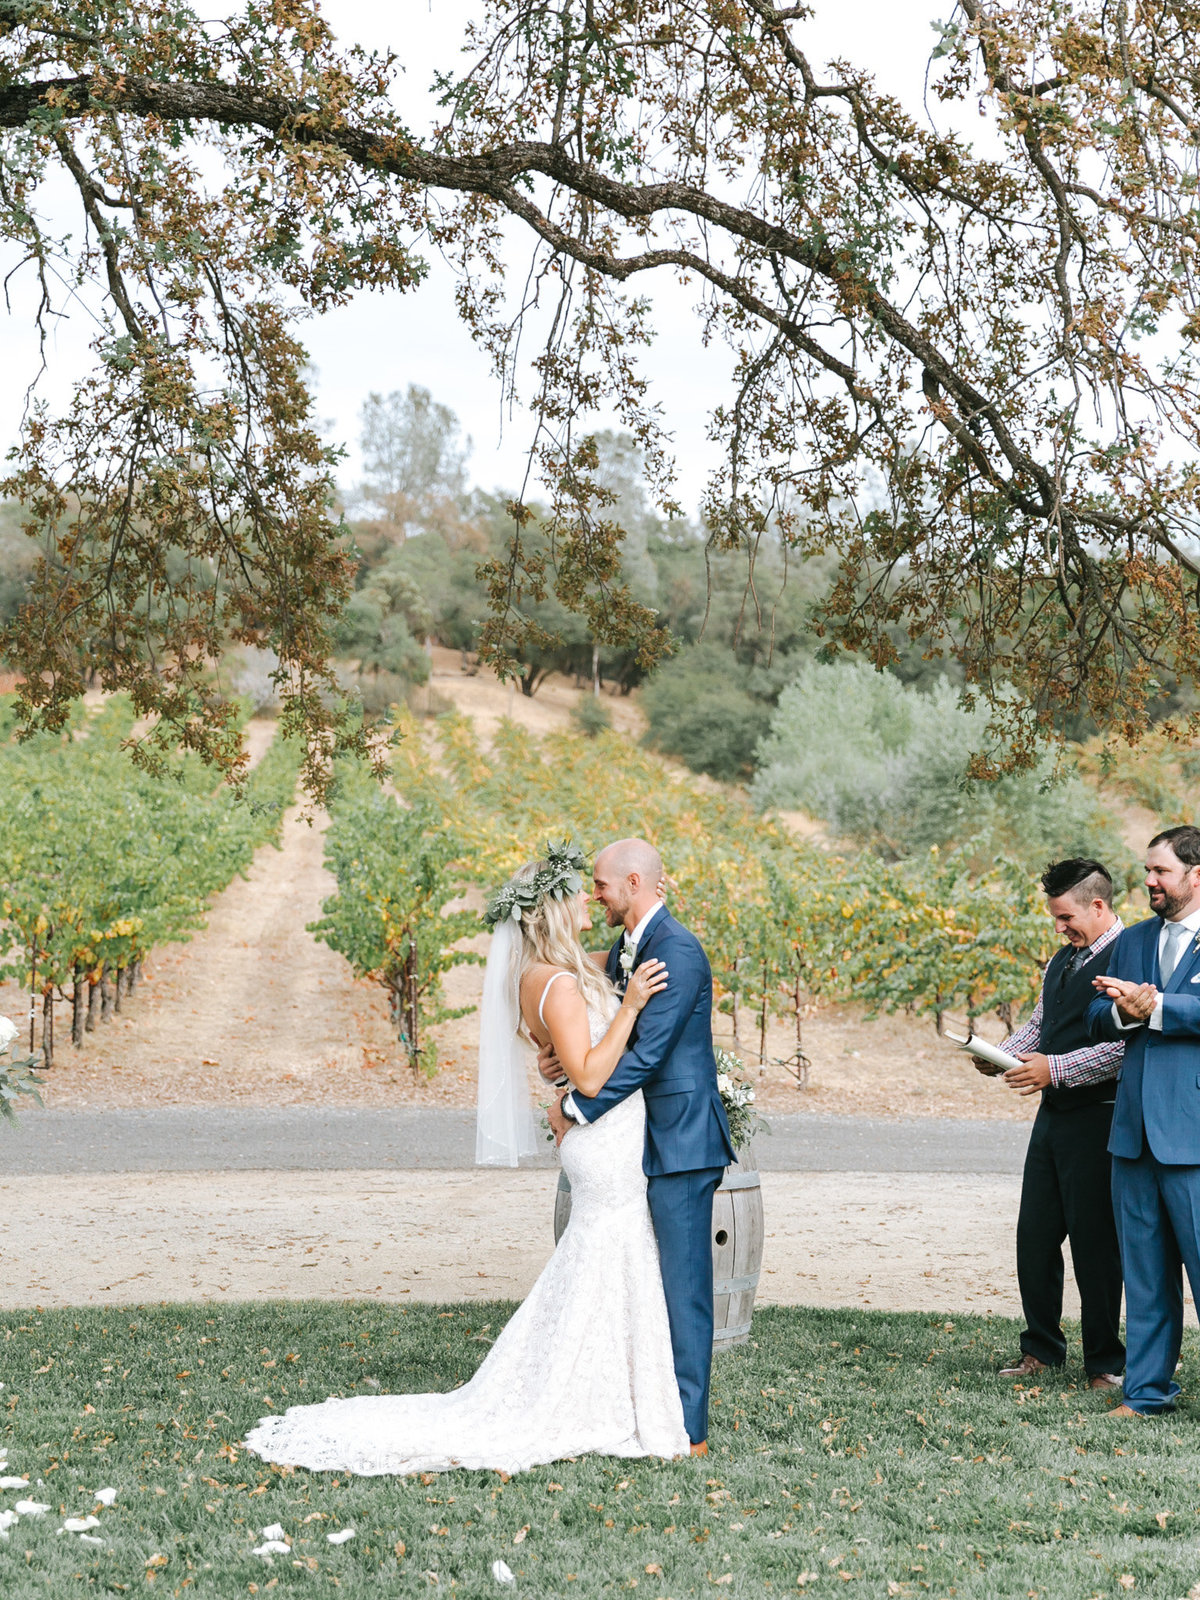 San-Diego-Wedding-Photographer-Temecula-Wedding-Venue-41